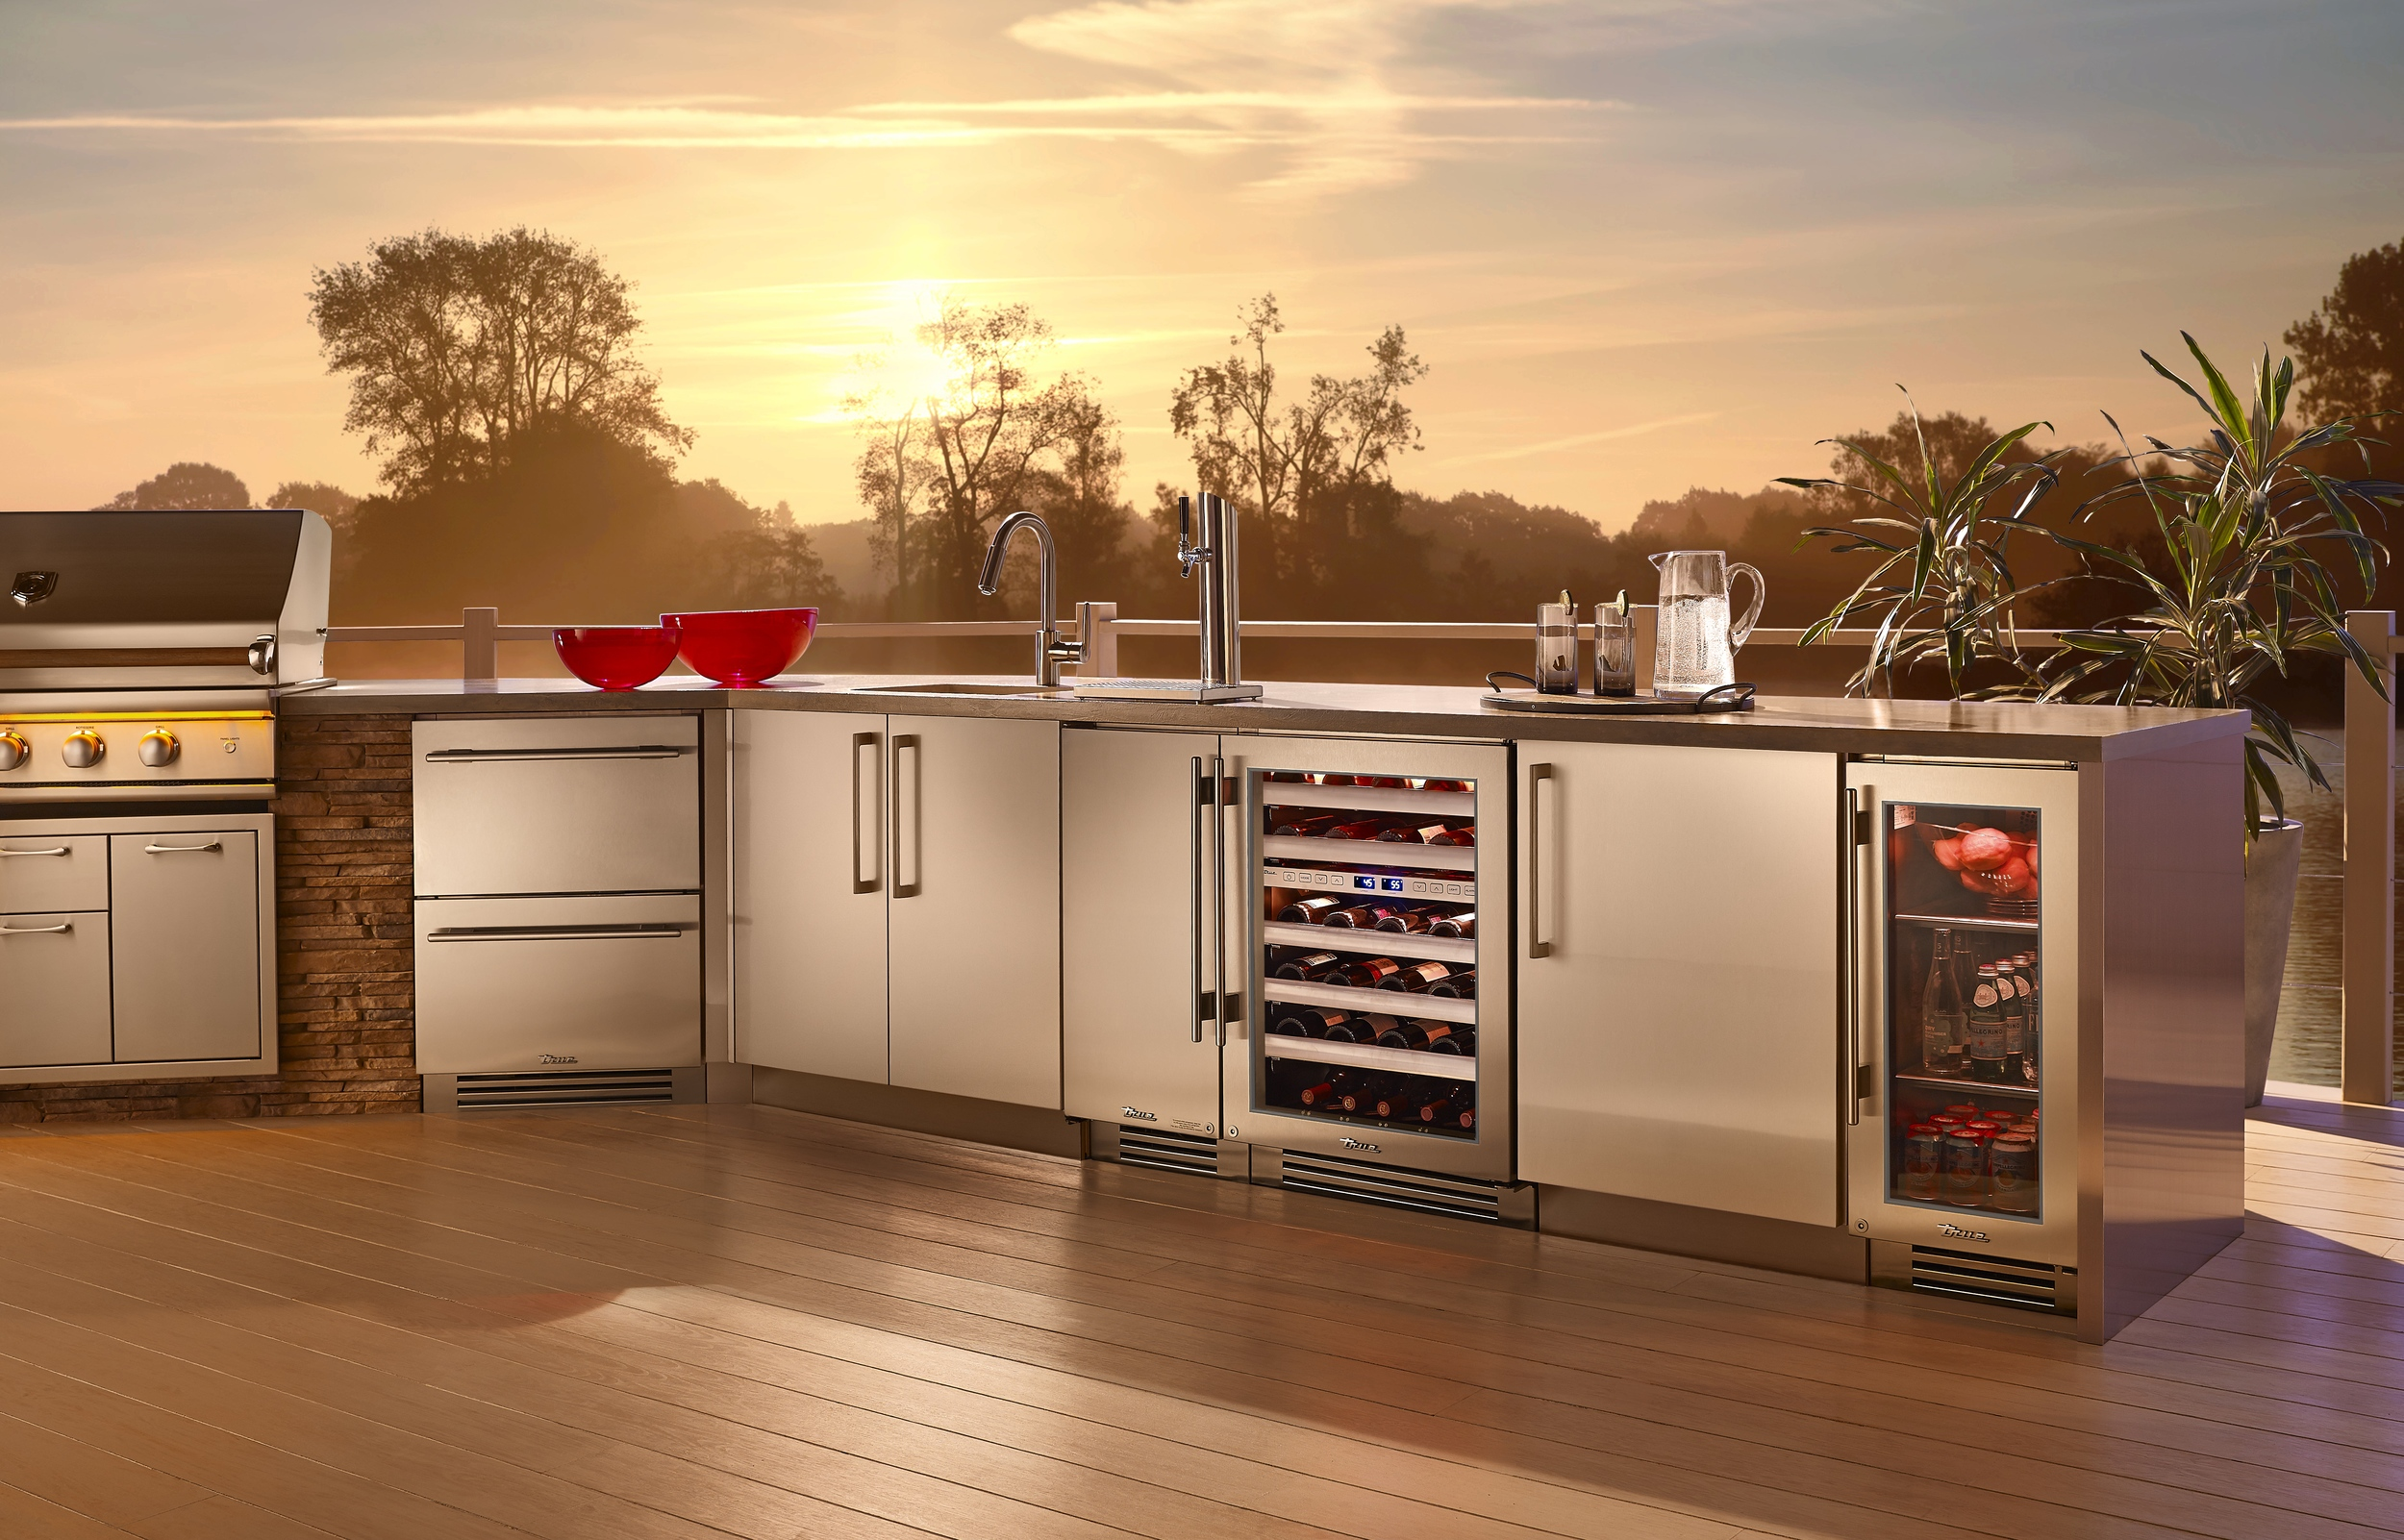 An outdoor kitchen by True Manufacturing